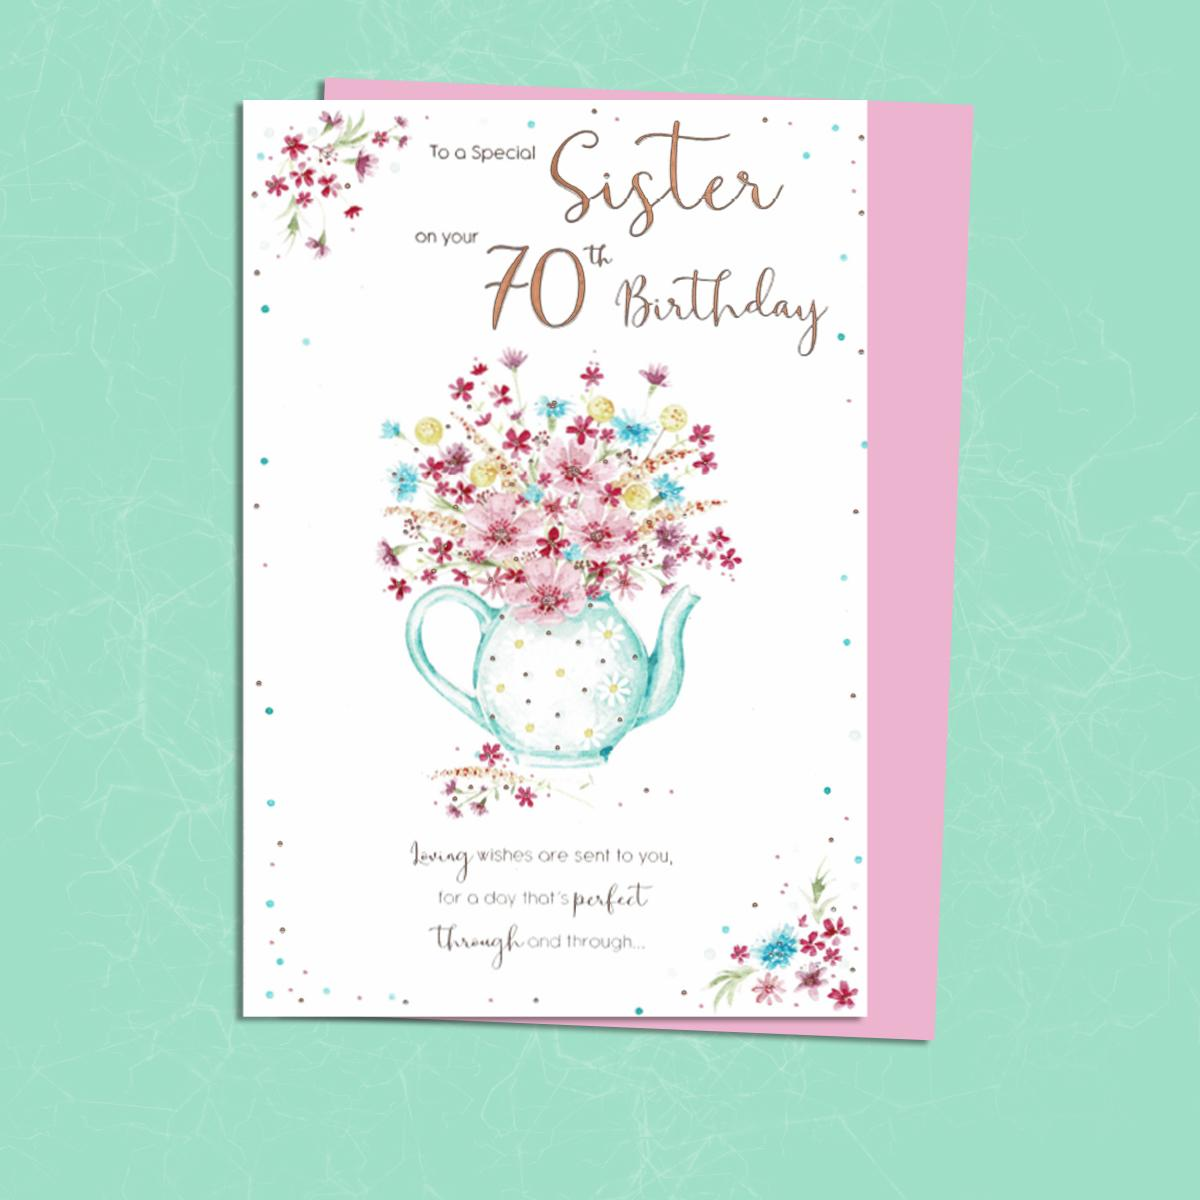 Special Sister On Your 70th Birthday Card